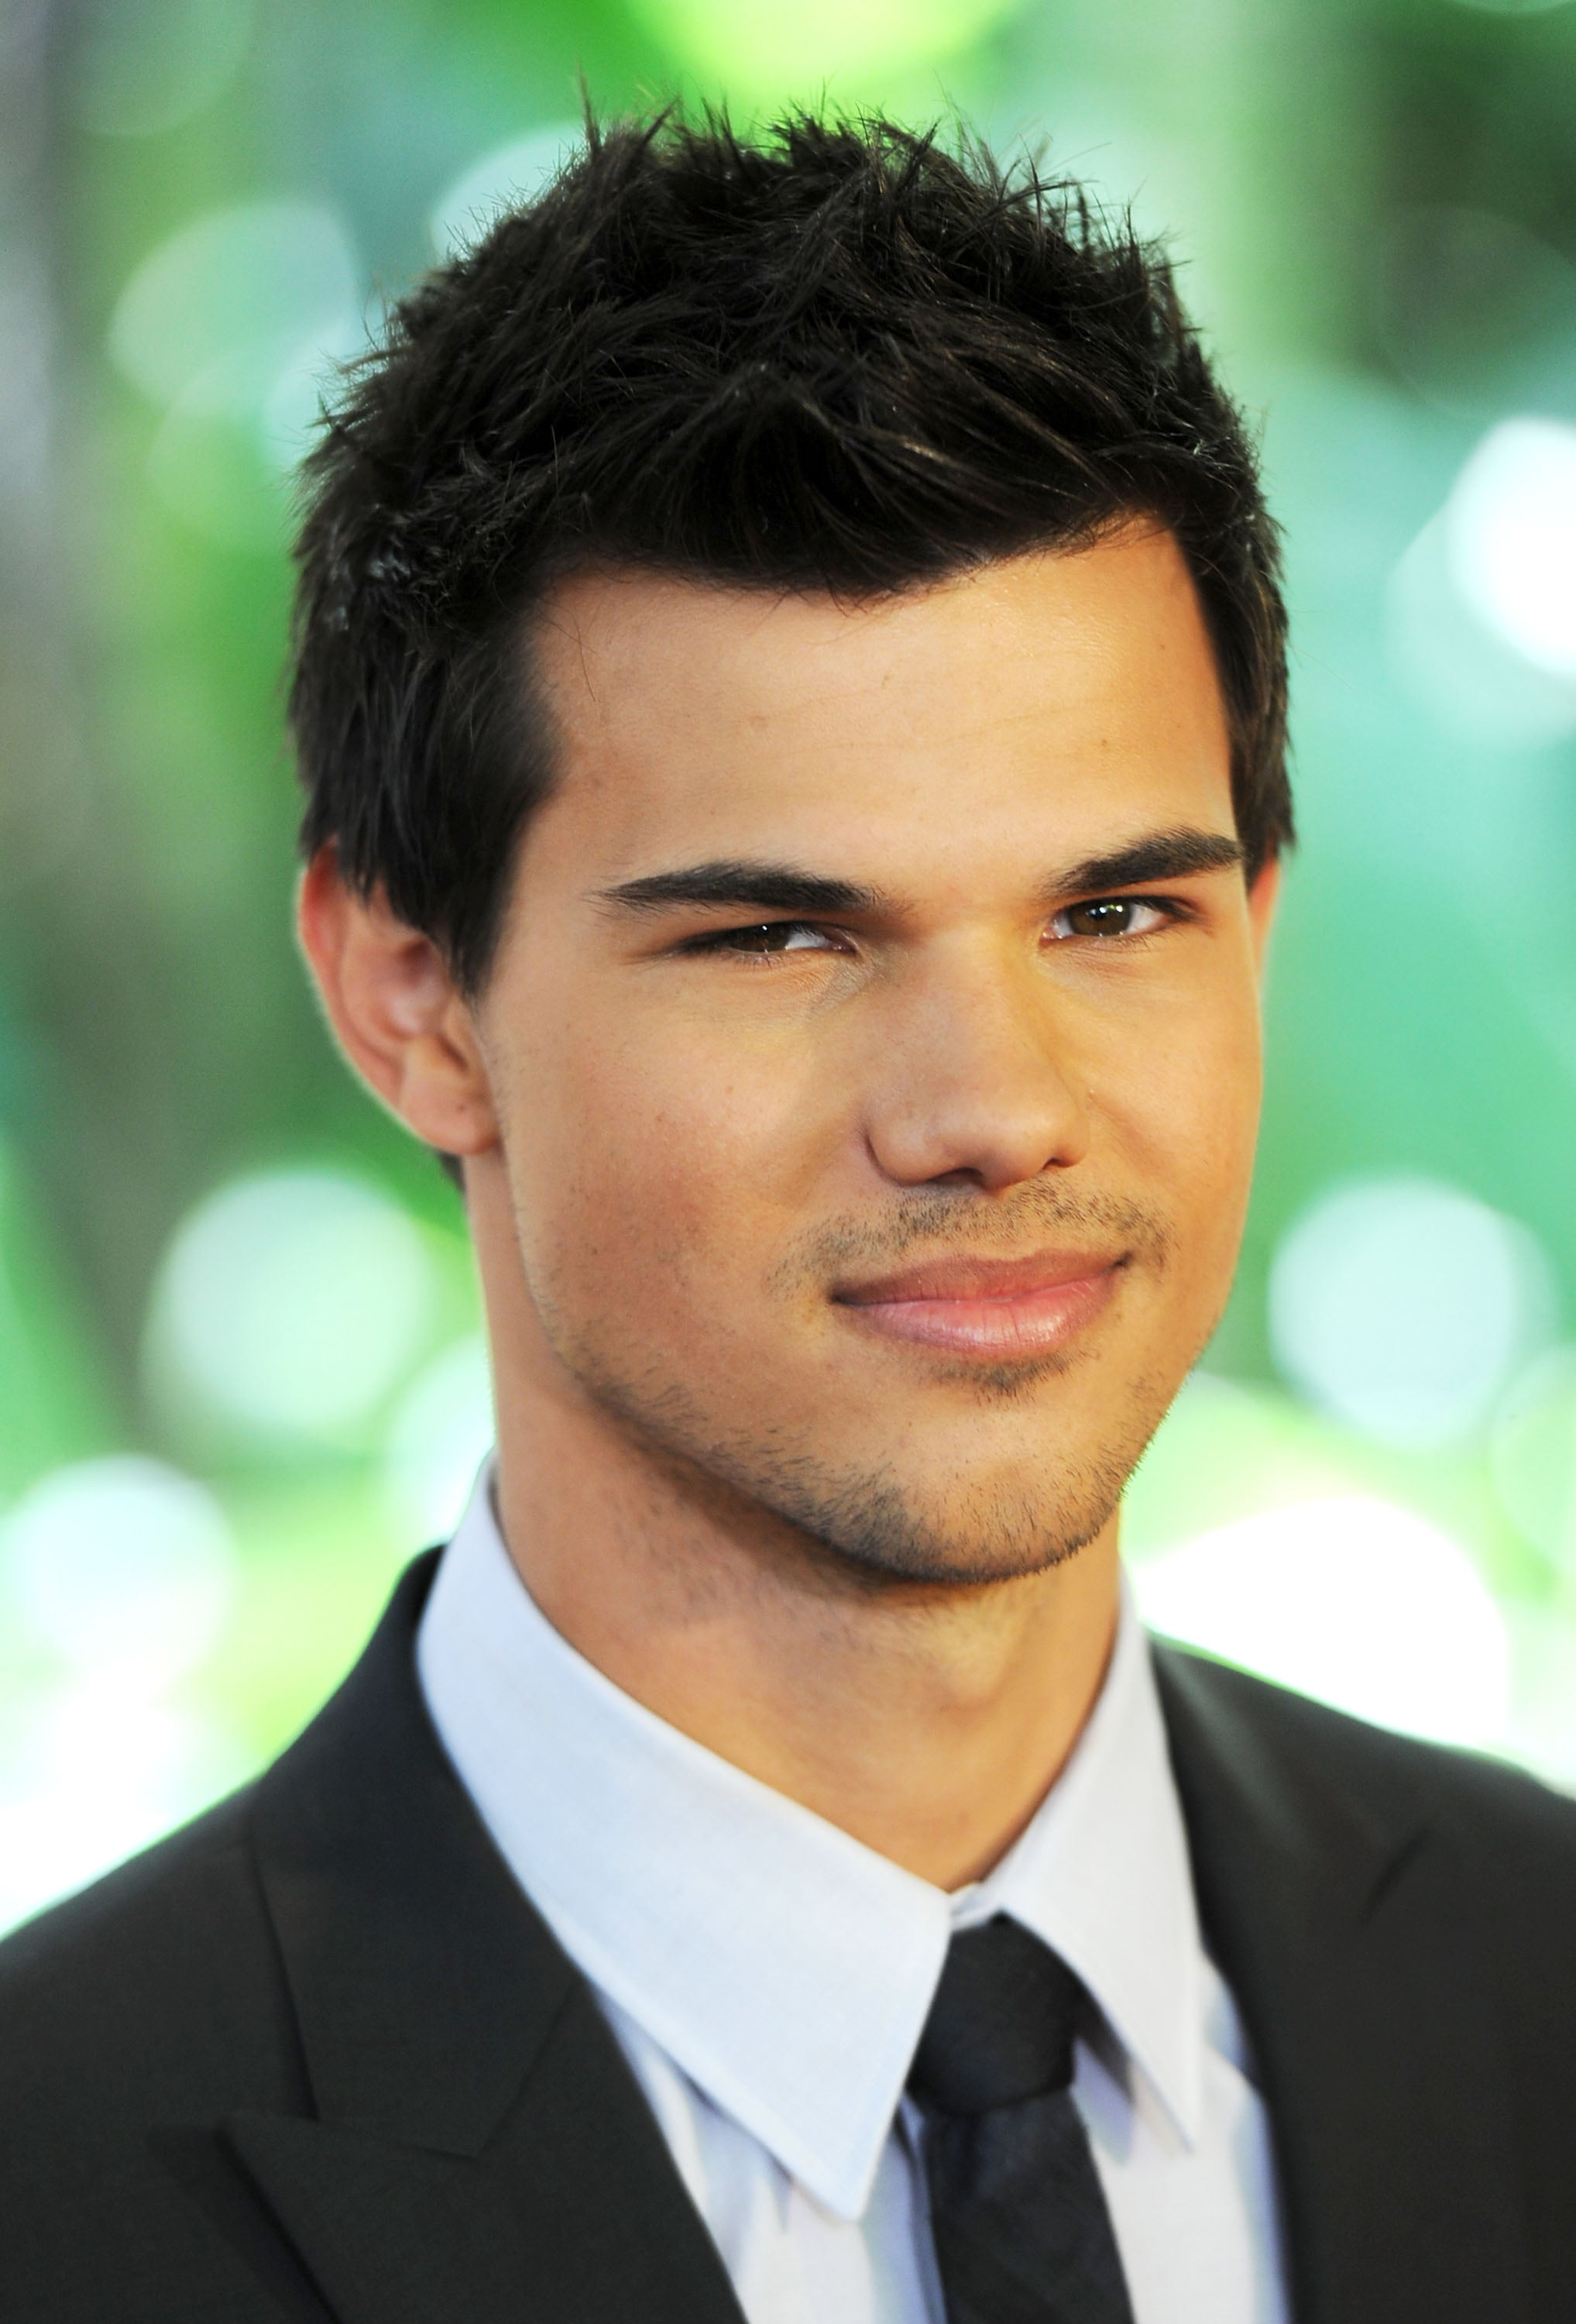 Taylor Lautner arrived at the Beverly Hills Hotel.